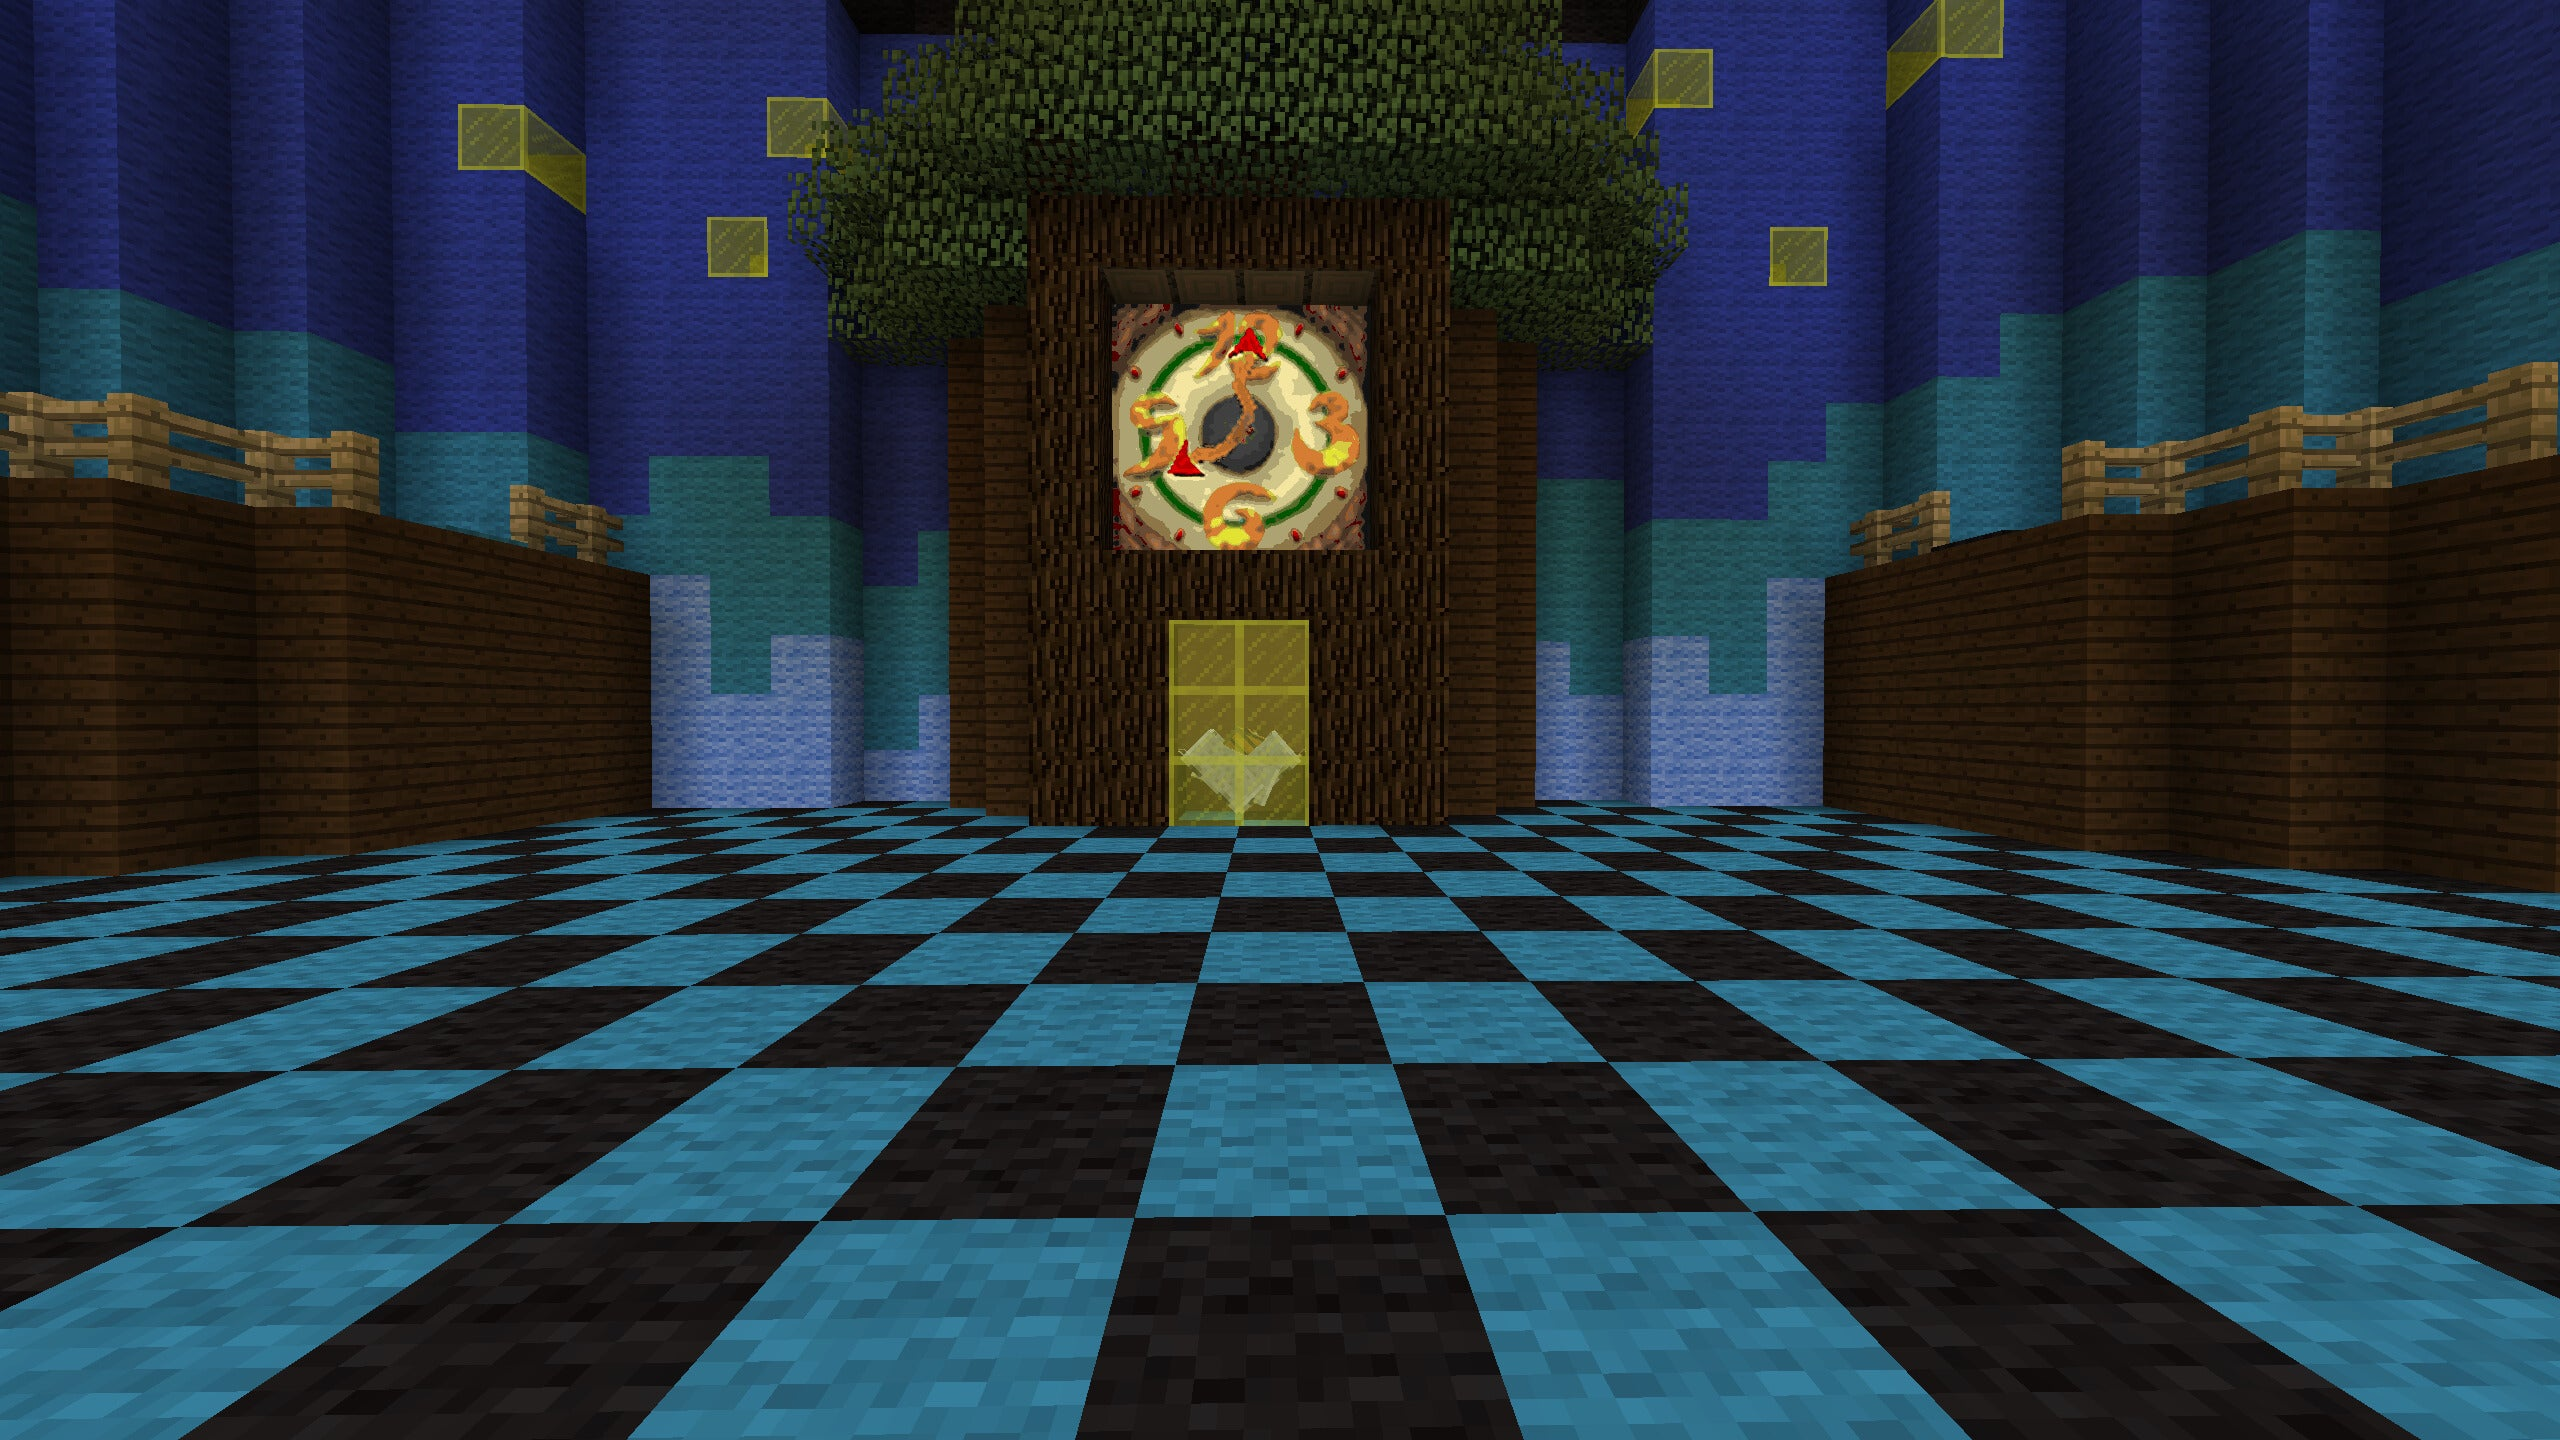 Explore Peach's Castle in Minecraft